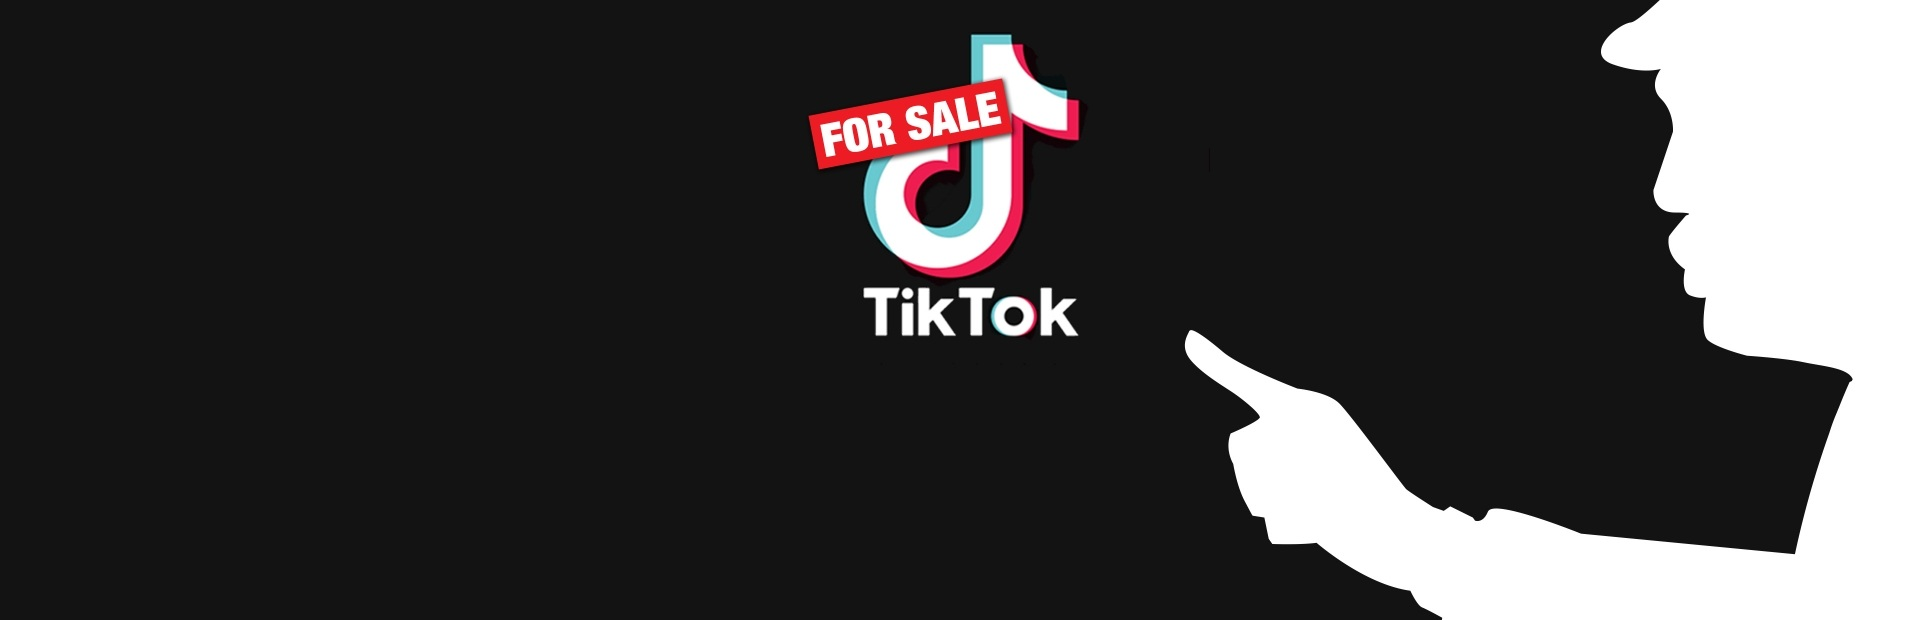 Speak out about the TikTok ban